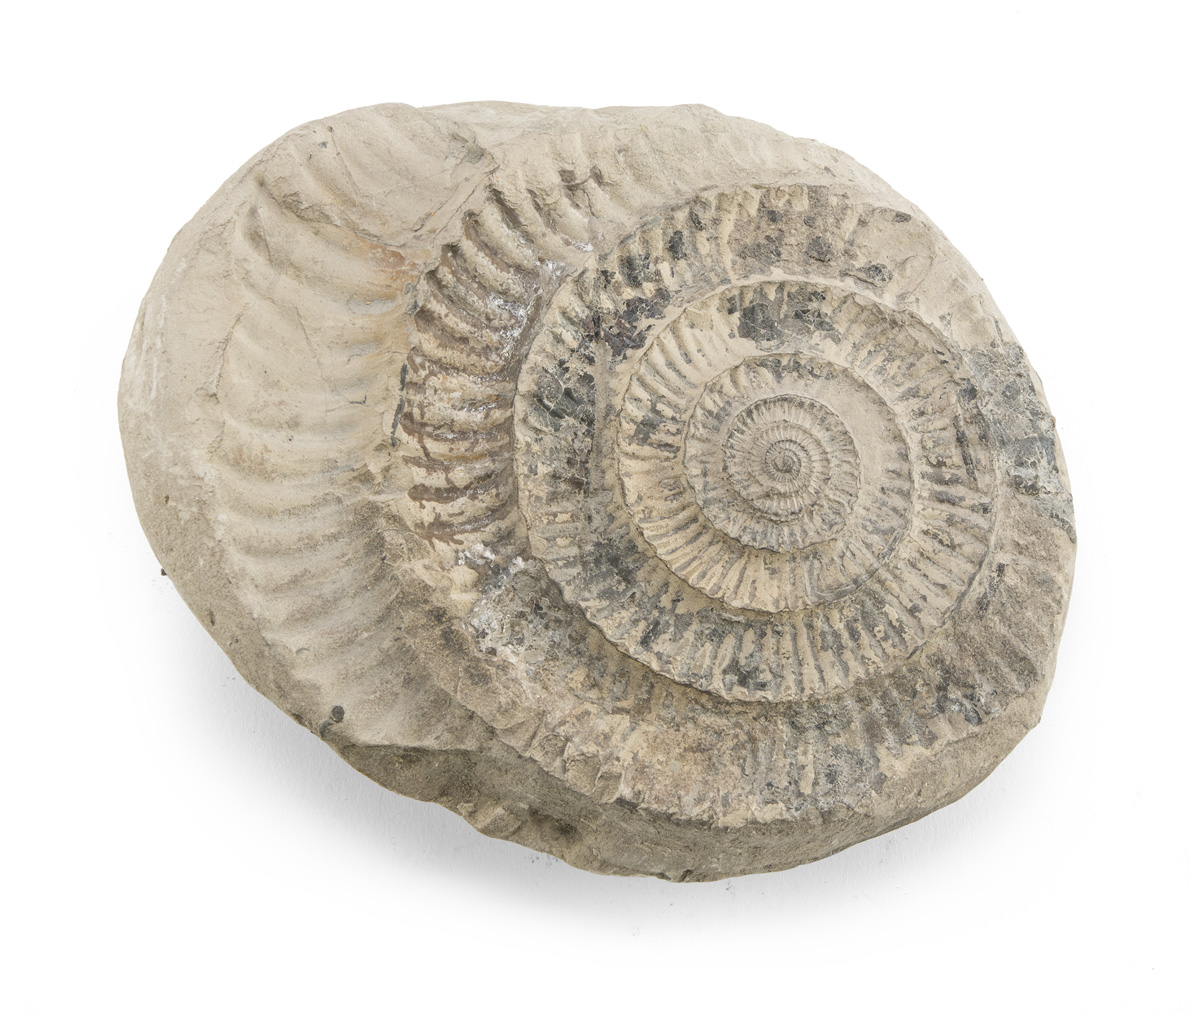 Lot 48 - FOSSIL OF COELENTERATE INDEFINABLE EPOCH